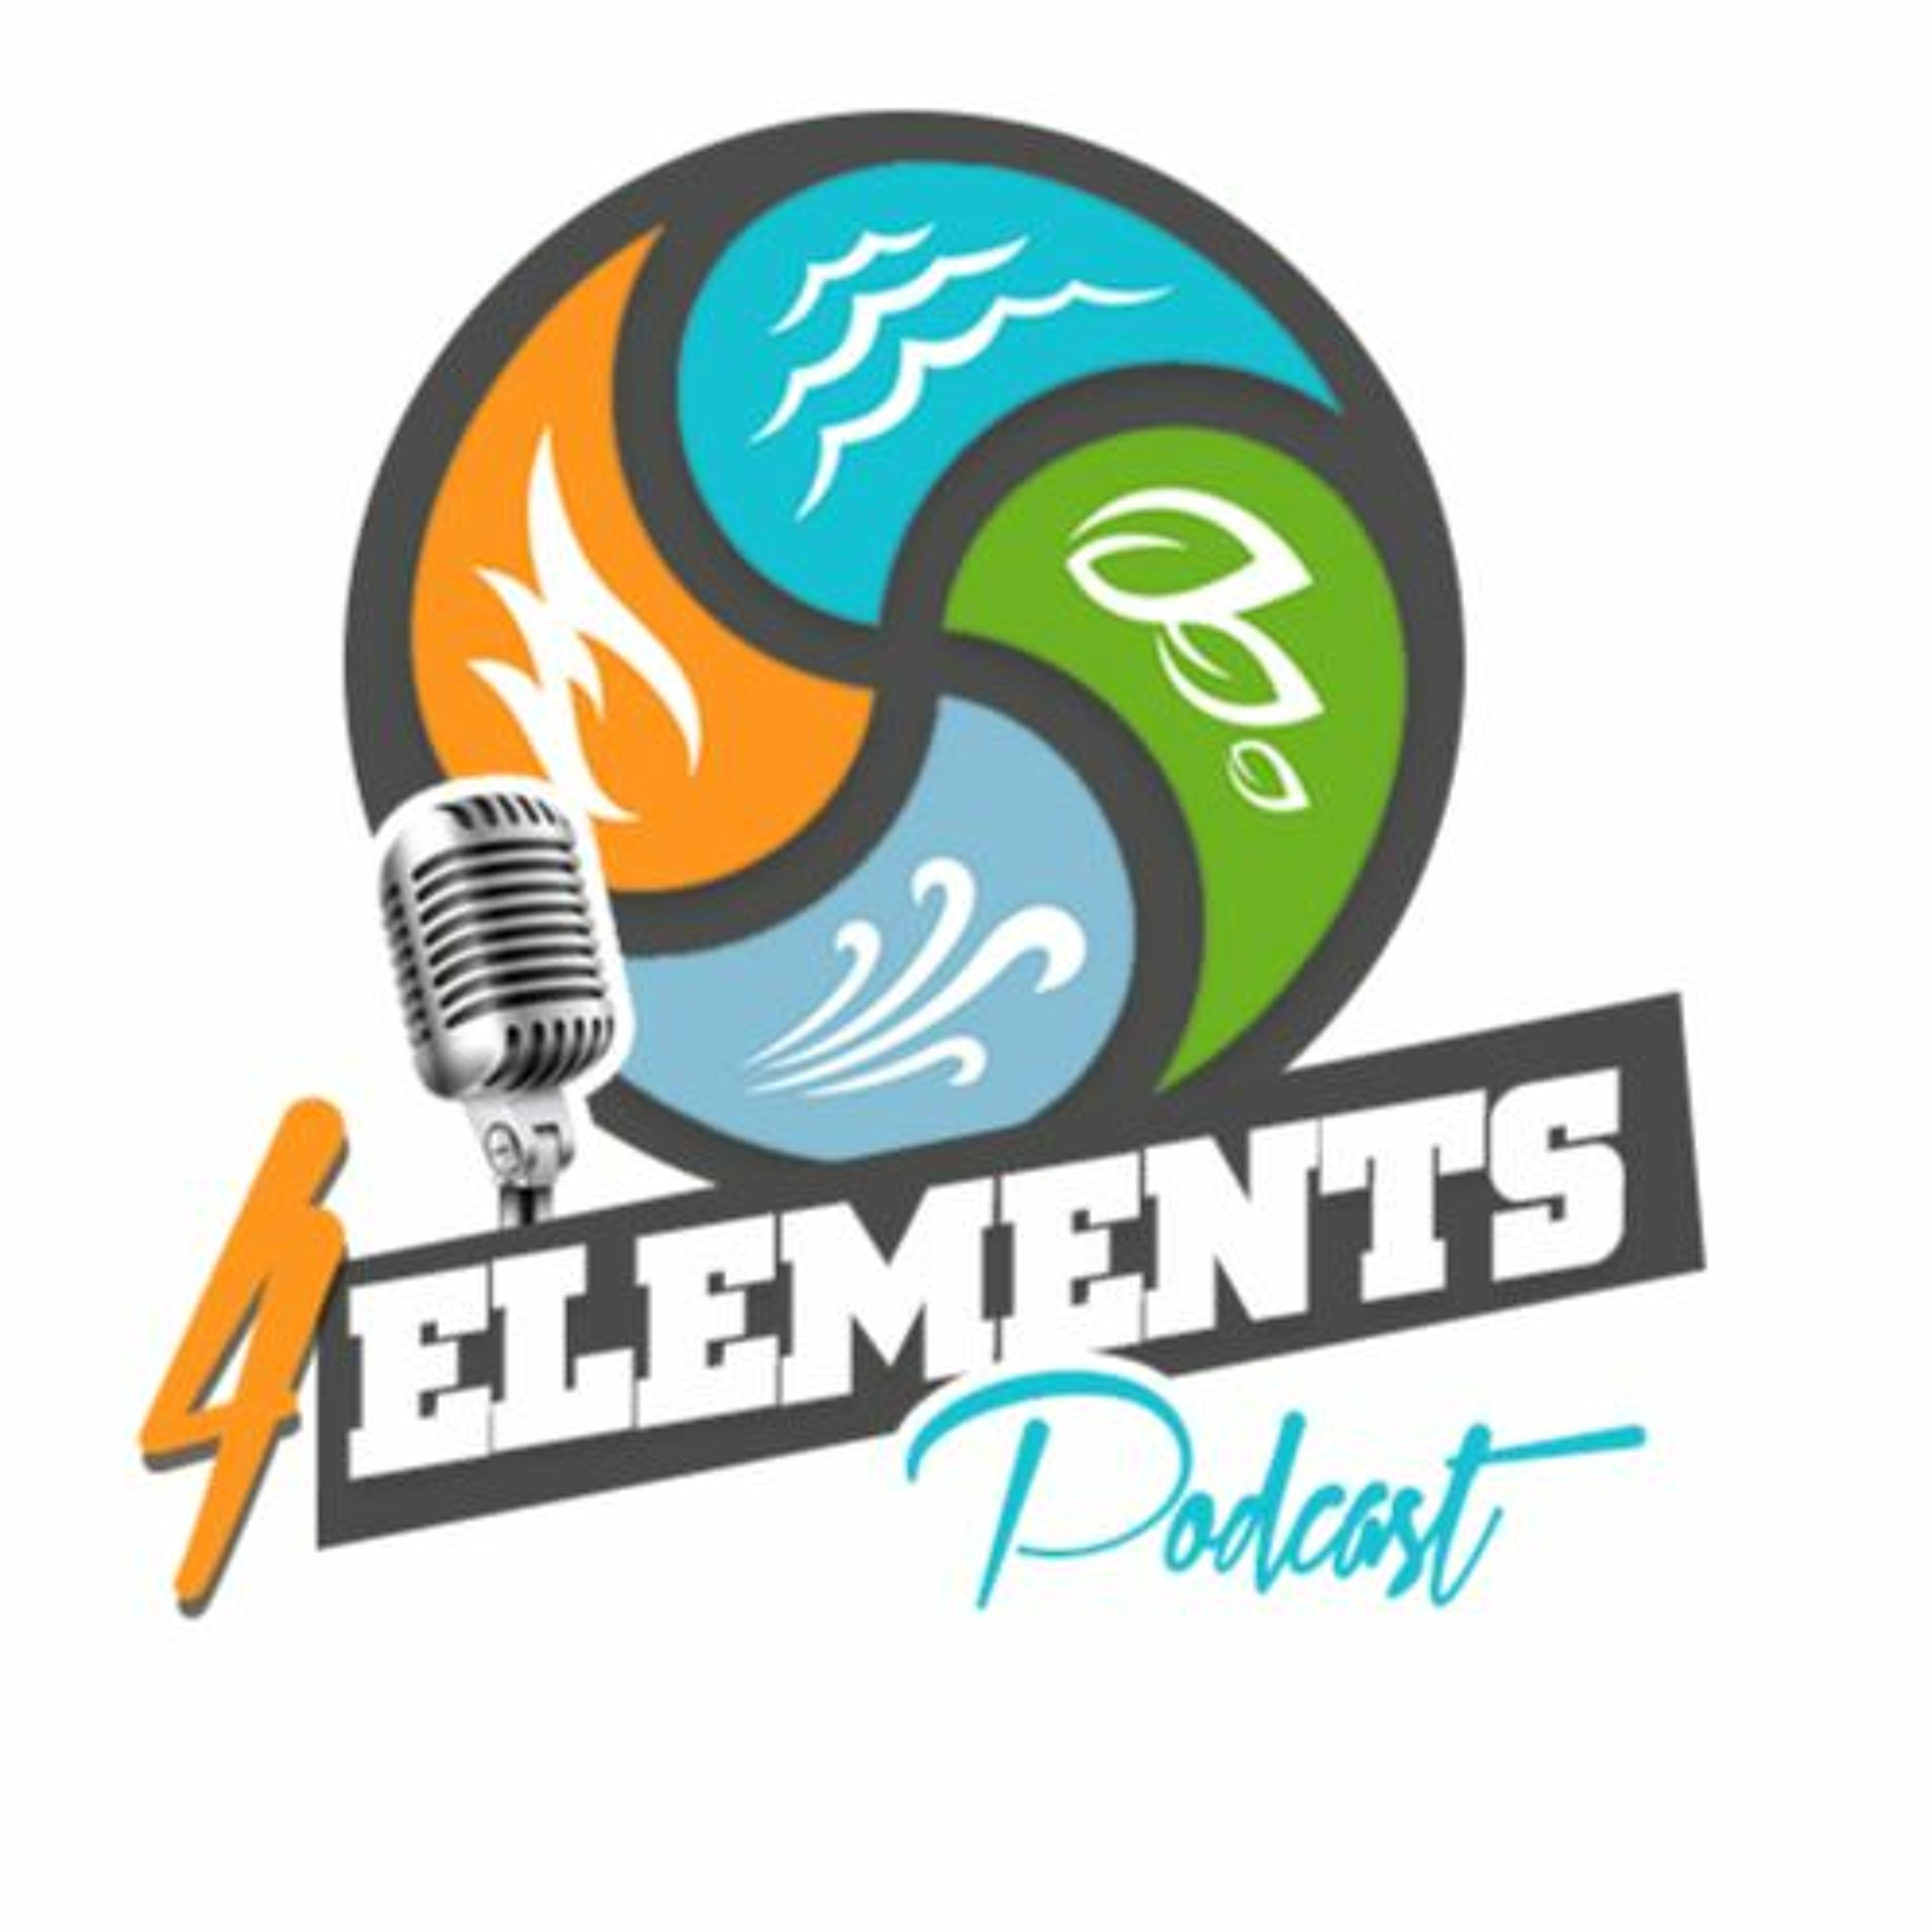 4 Elements Podcast 21 (VALENTINE SPECIAL)